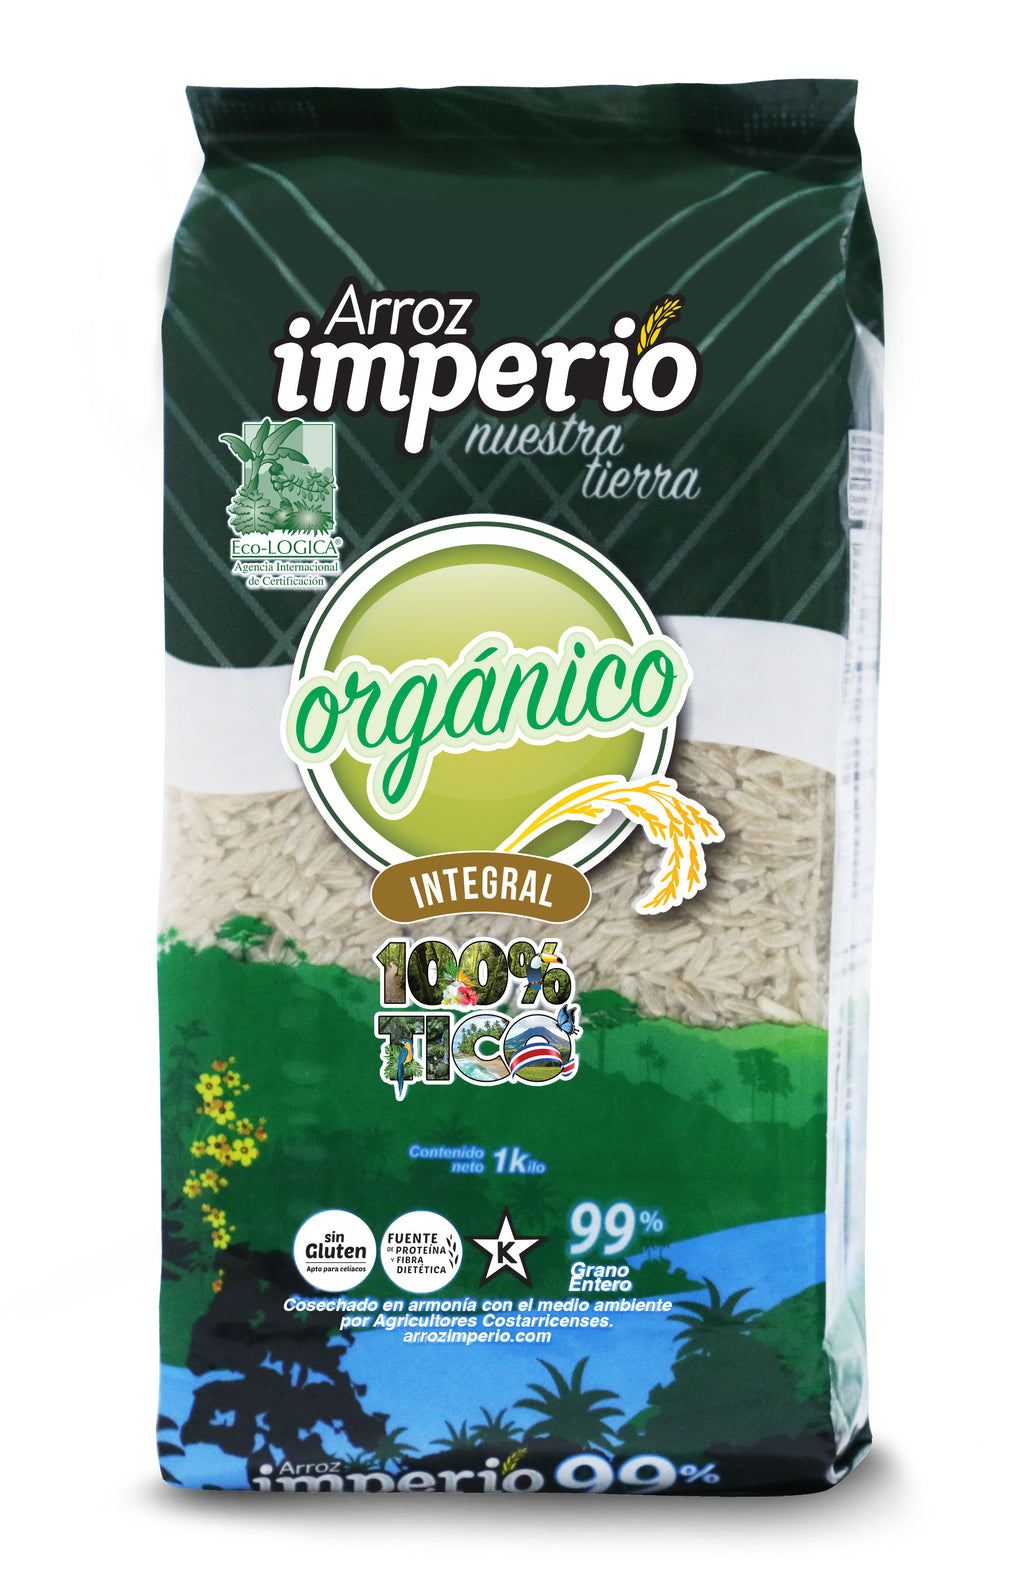 ARROZ IMPERIO ORGÁNICO INTEGRAL 99% GRANO ENTERO